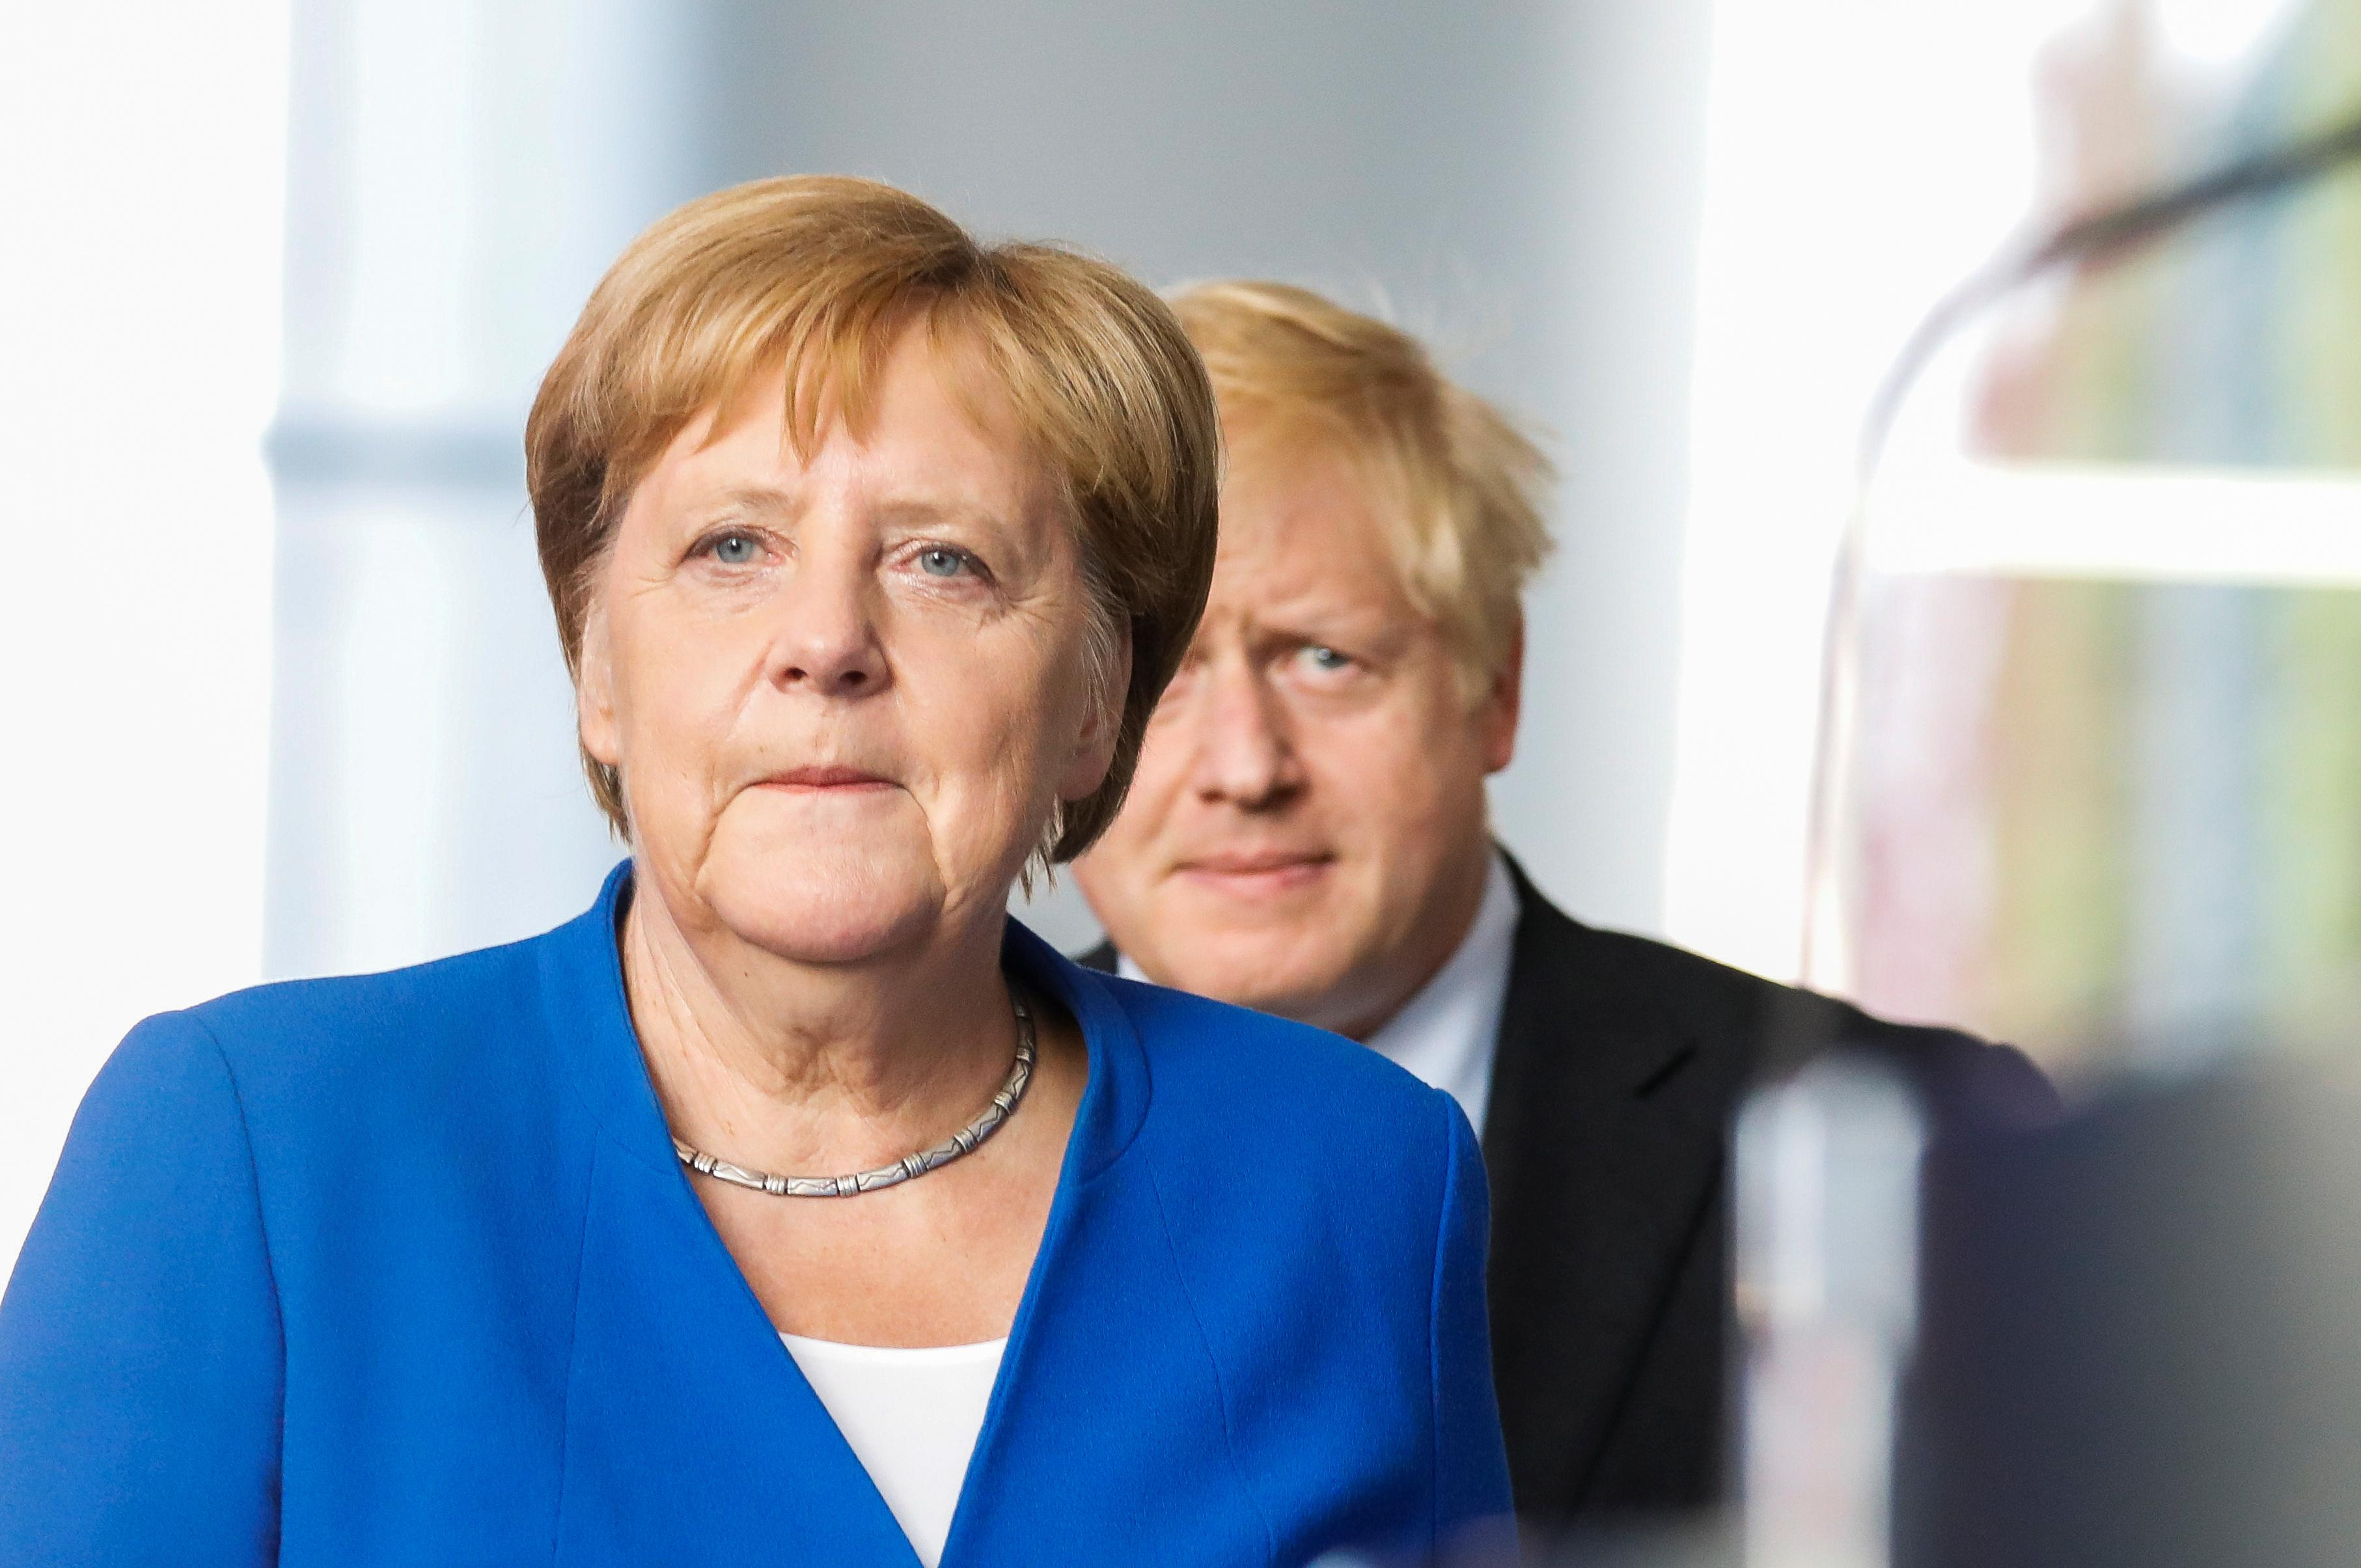 Merkel: With imagination, Irish 'backstop' issue can be solved in 30 days